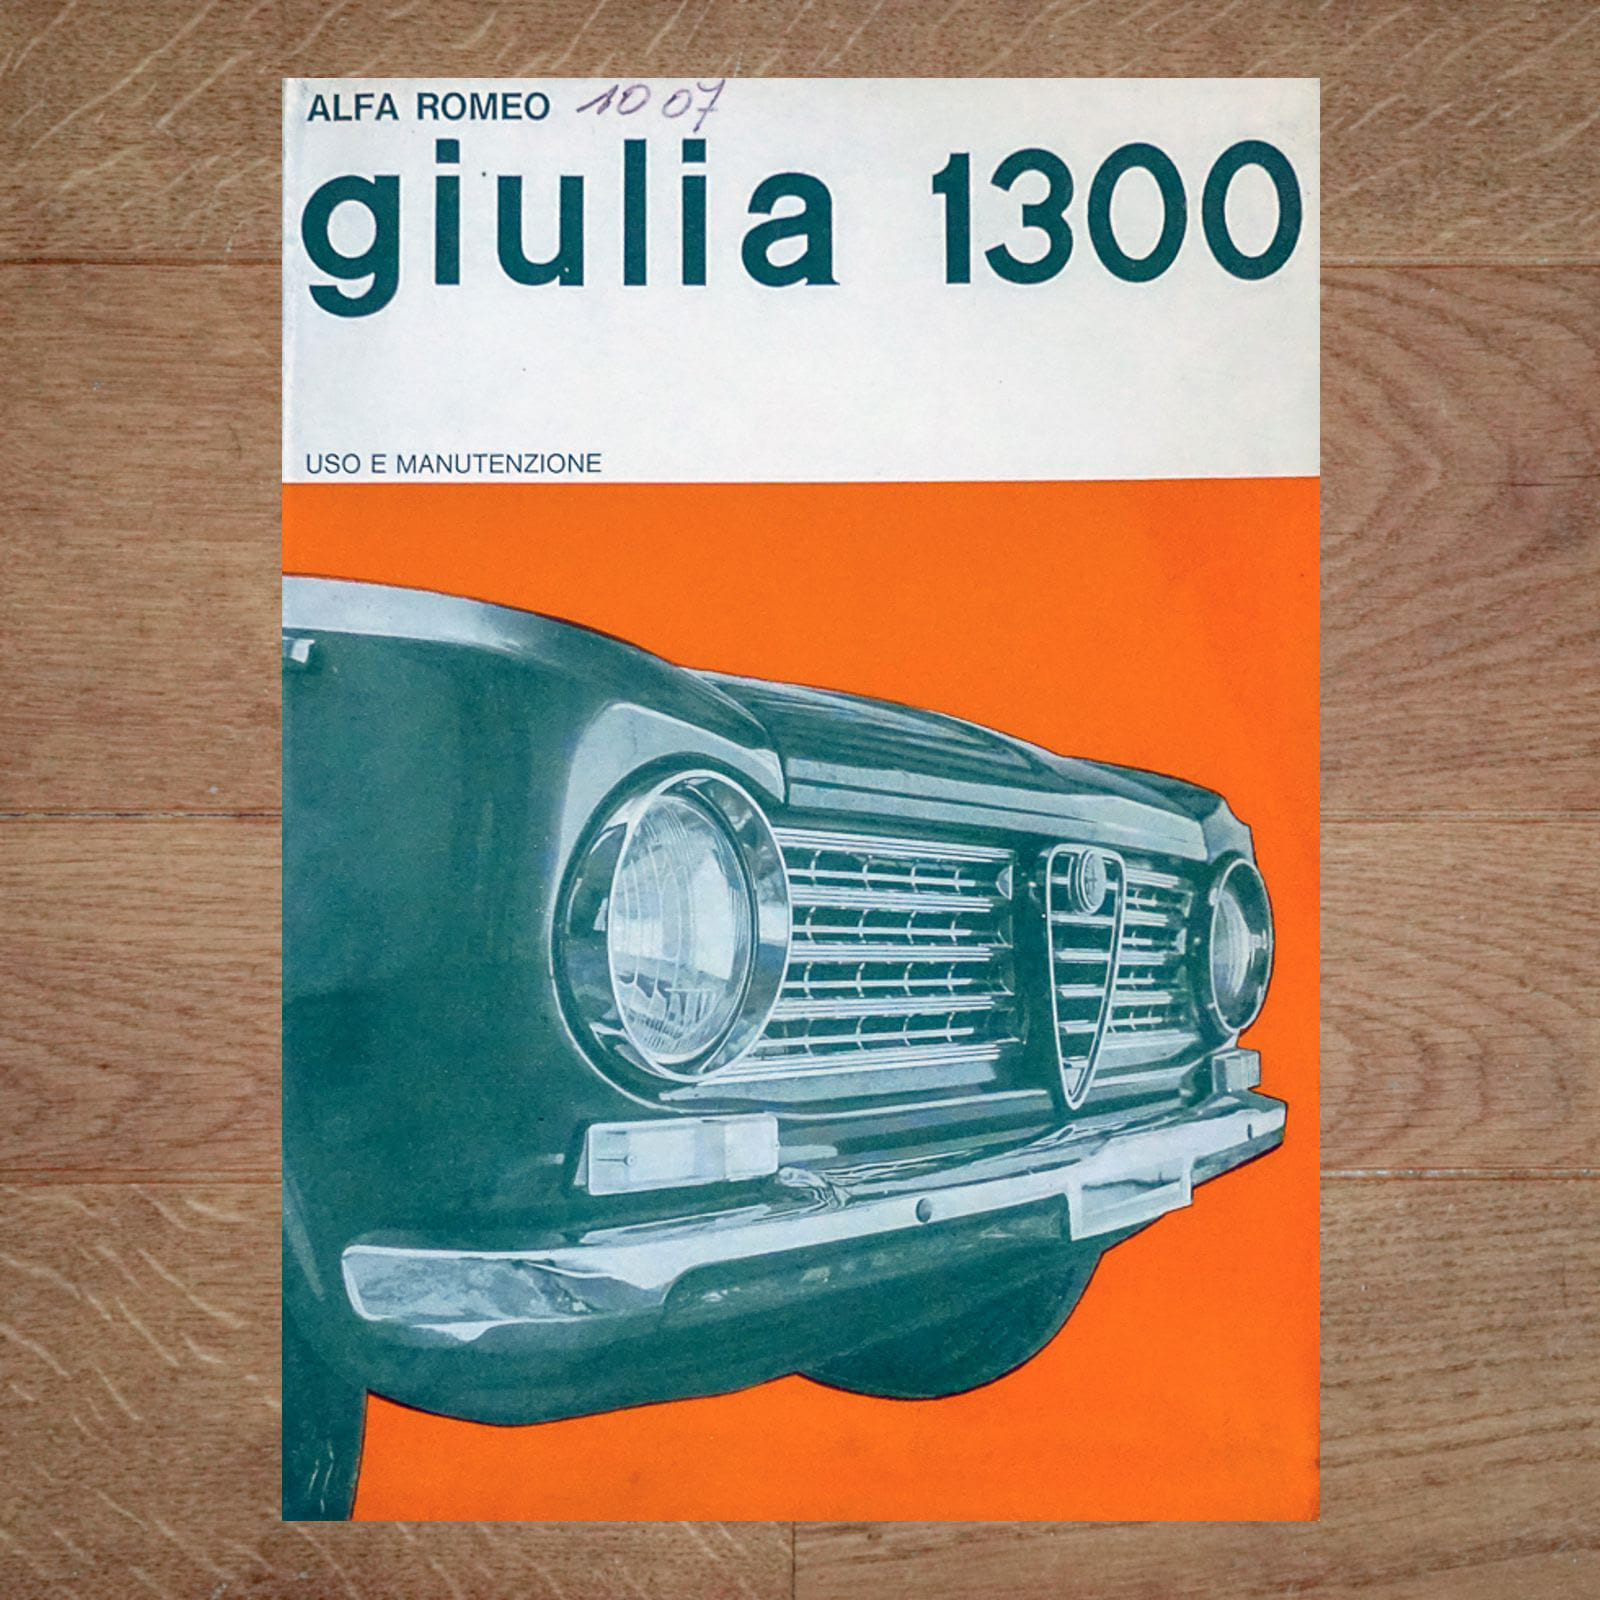 Vintage Original Alfa Romeo Giulia 1300 User Manual, 9